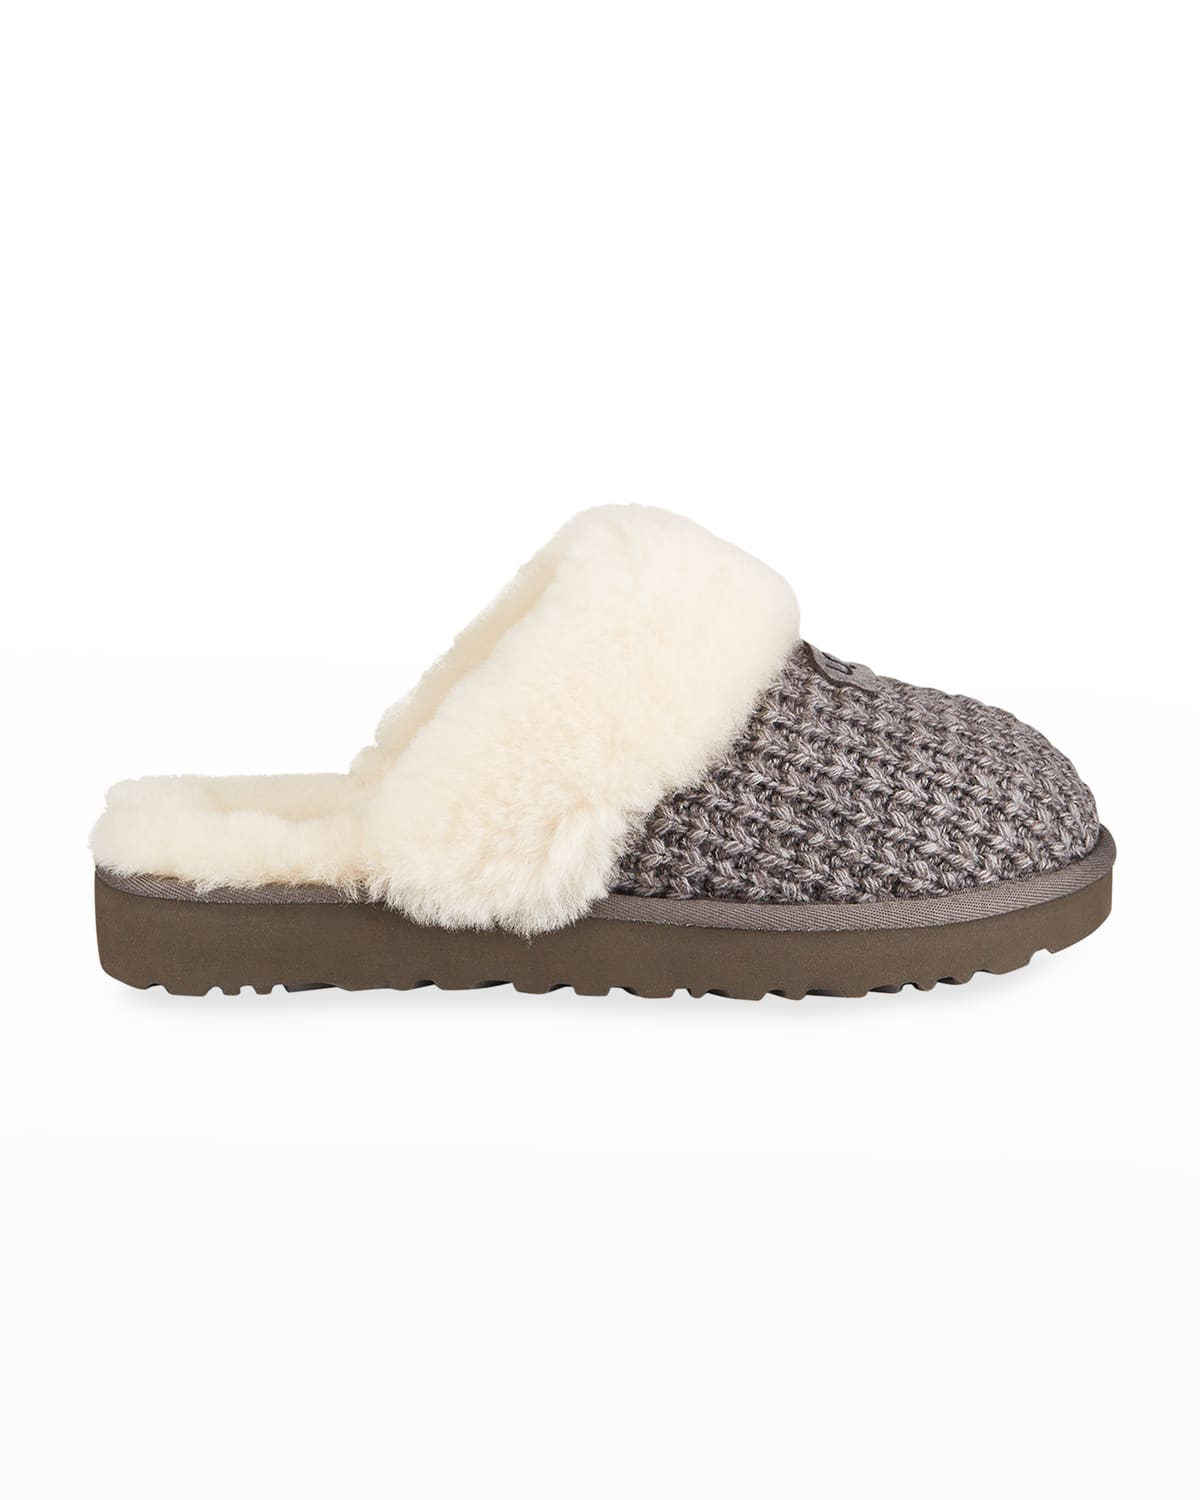 Cozy Knit Shearling Slippers